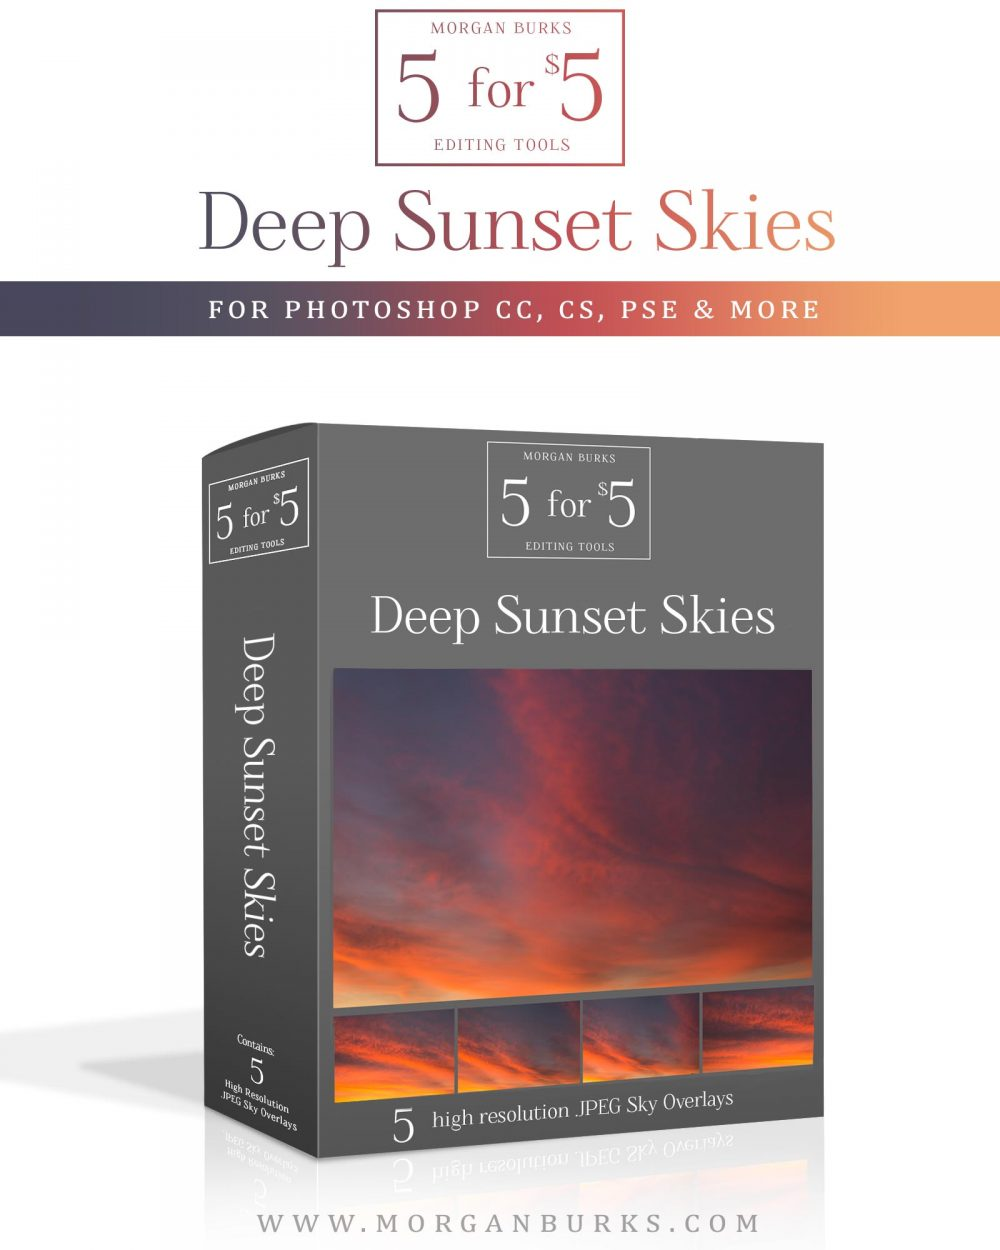 Deep Sunset Sky Overlays for Photoshop & Elements - $5 Editing Products for Photographers. Easy to use and affordable!